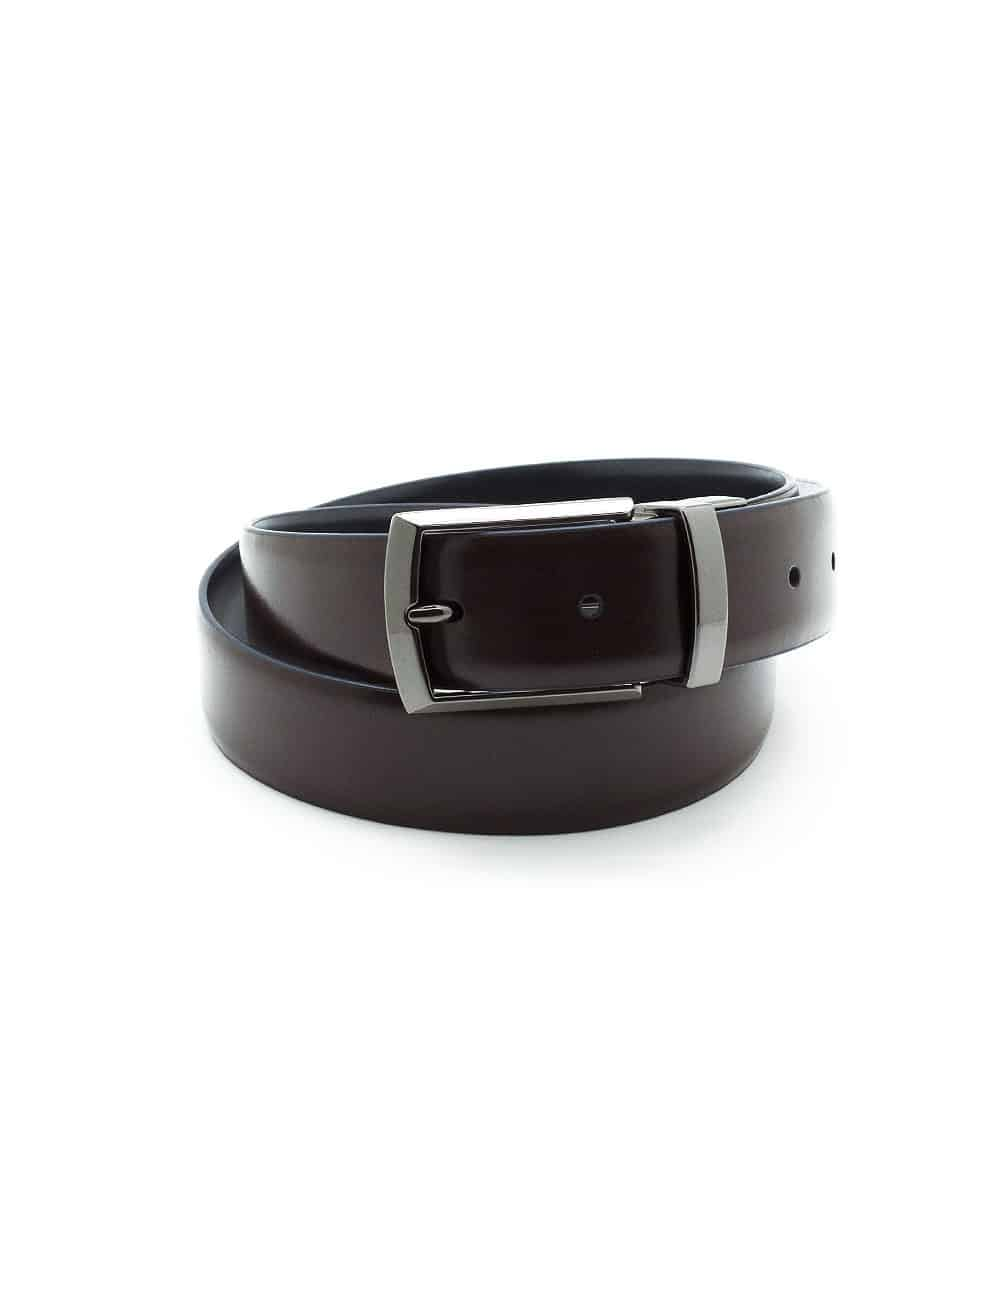 Navy / Dark Brown Reversible Leather Belt LBR10.8